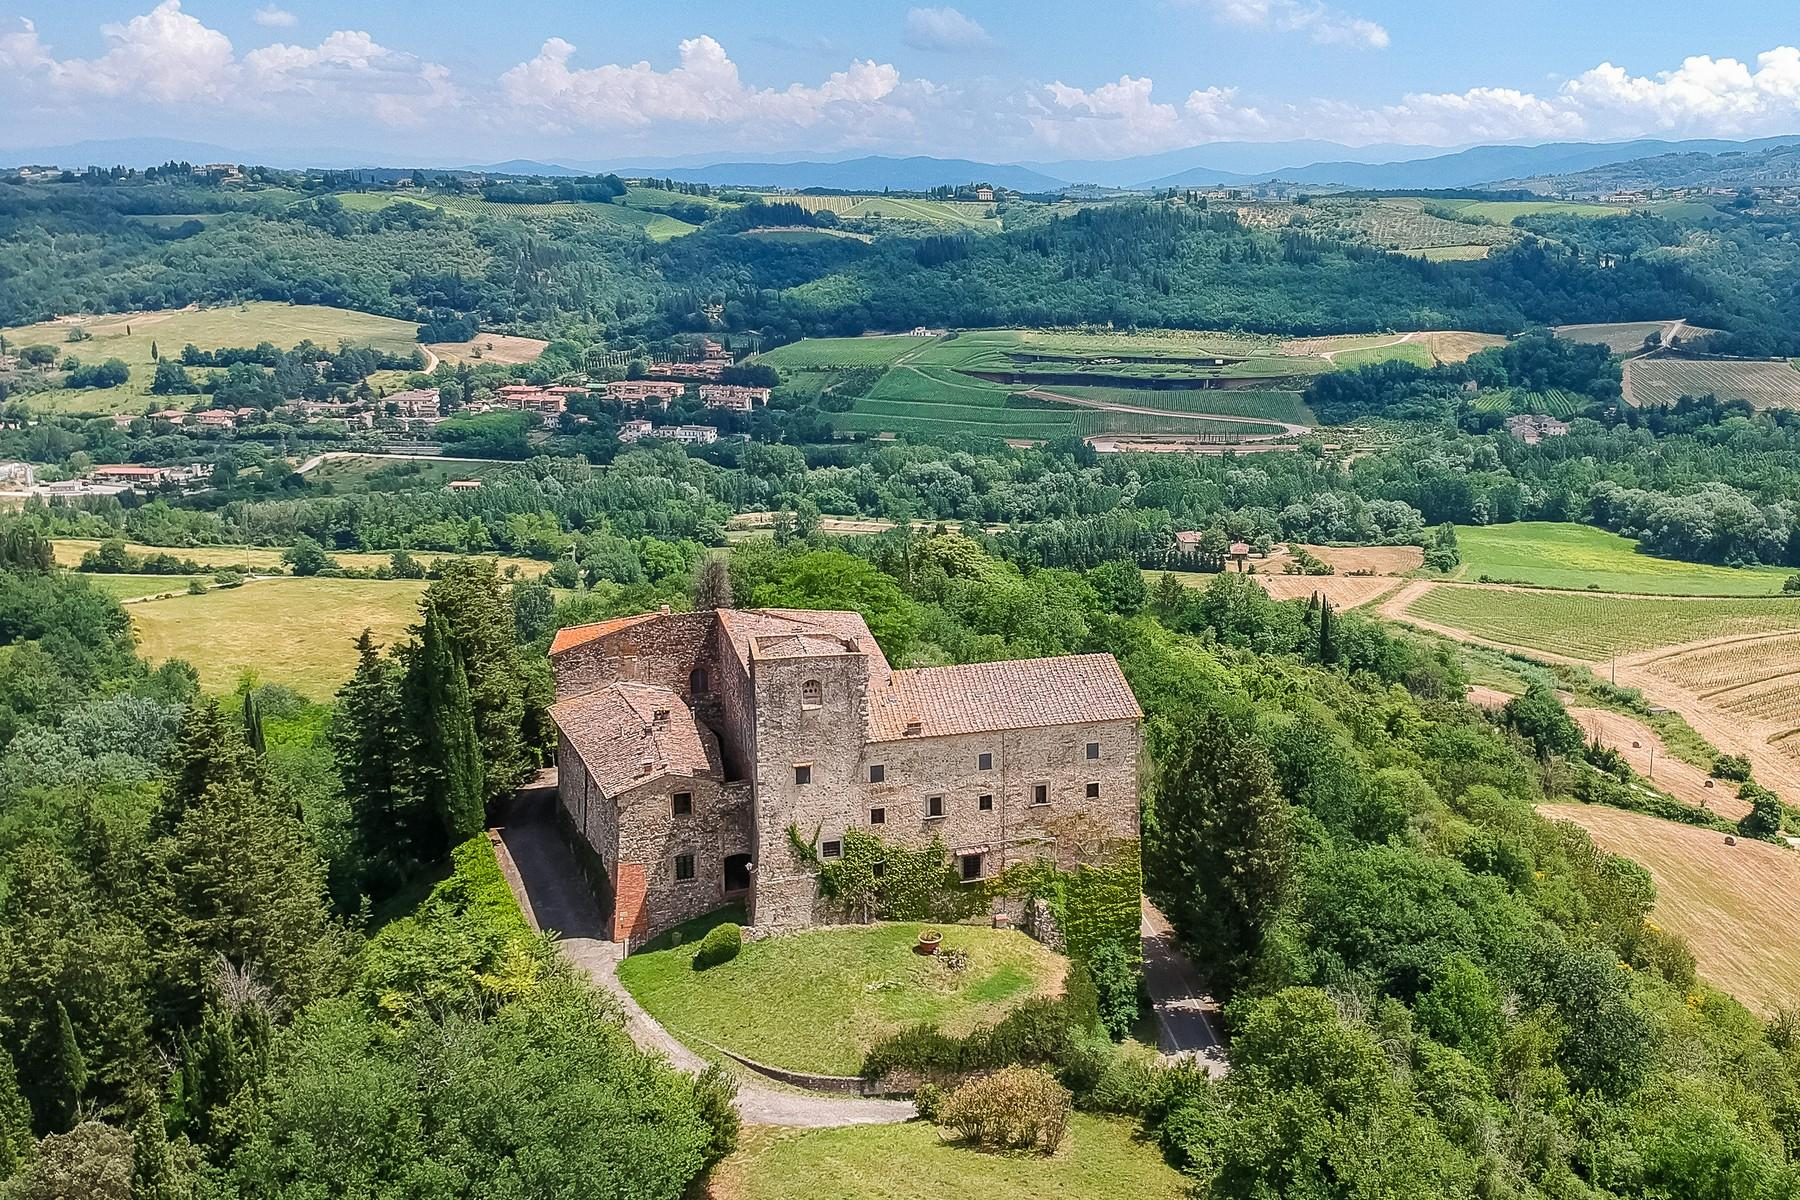 Renaissance castle in the Florentine Chianti hills - 15